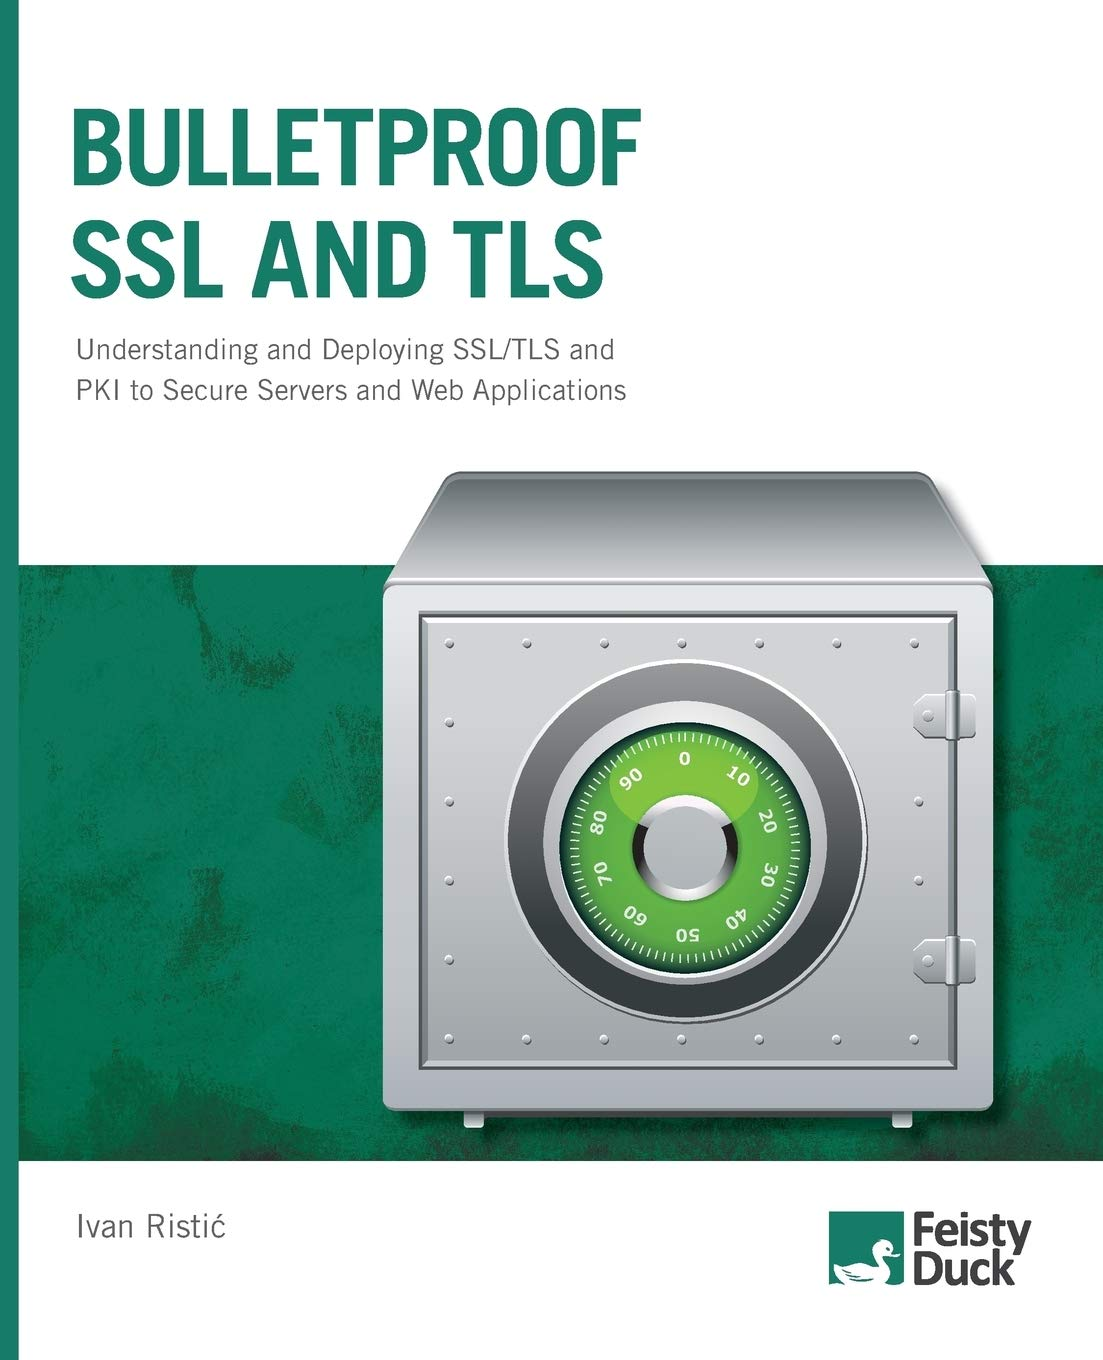 Image OfBulletproof SSL And TLS: Understanding And Deploying SSL/TLS And PKI To Secure Servers And Web Applications